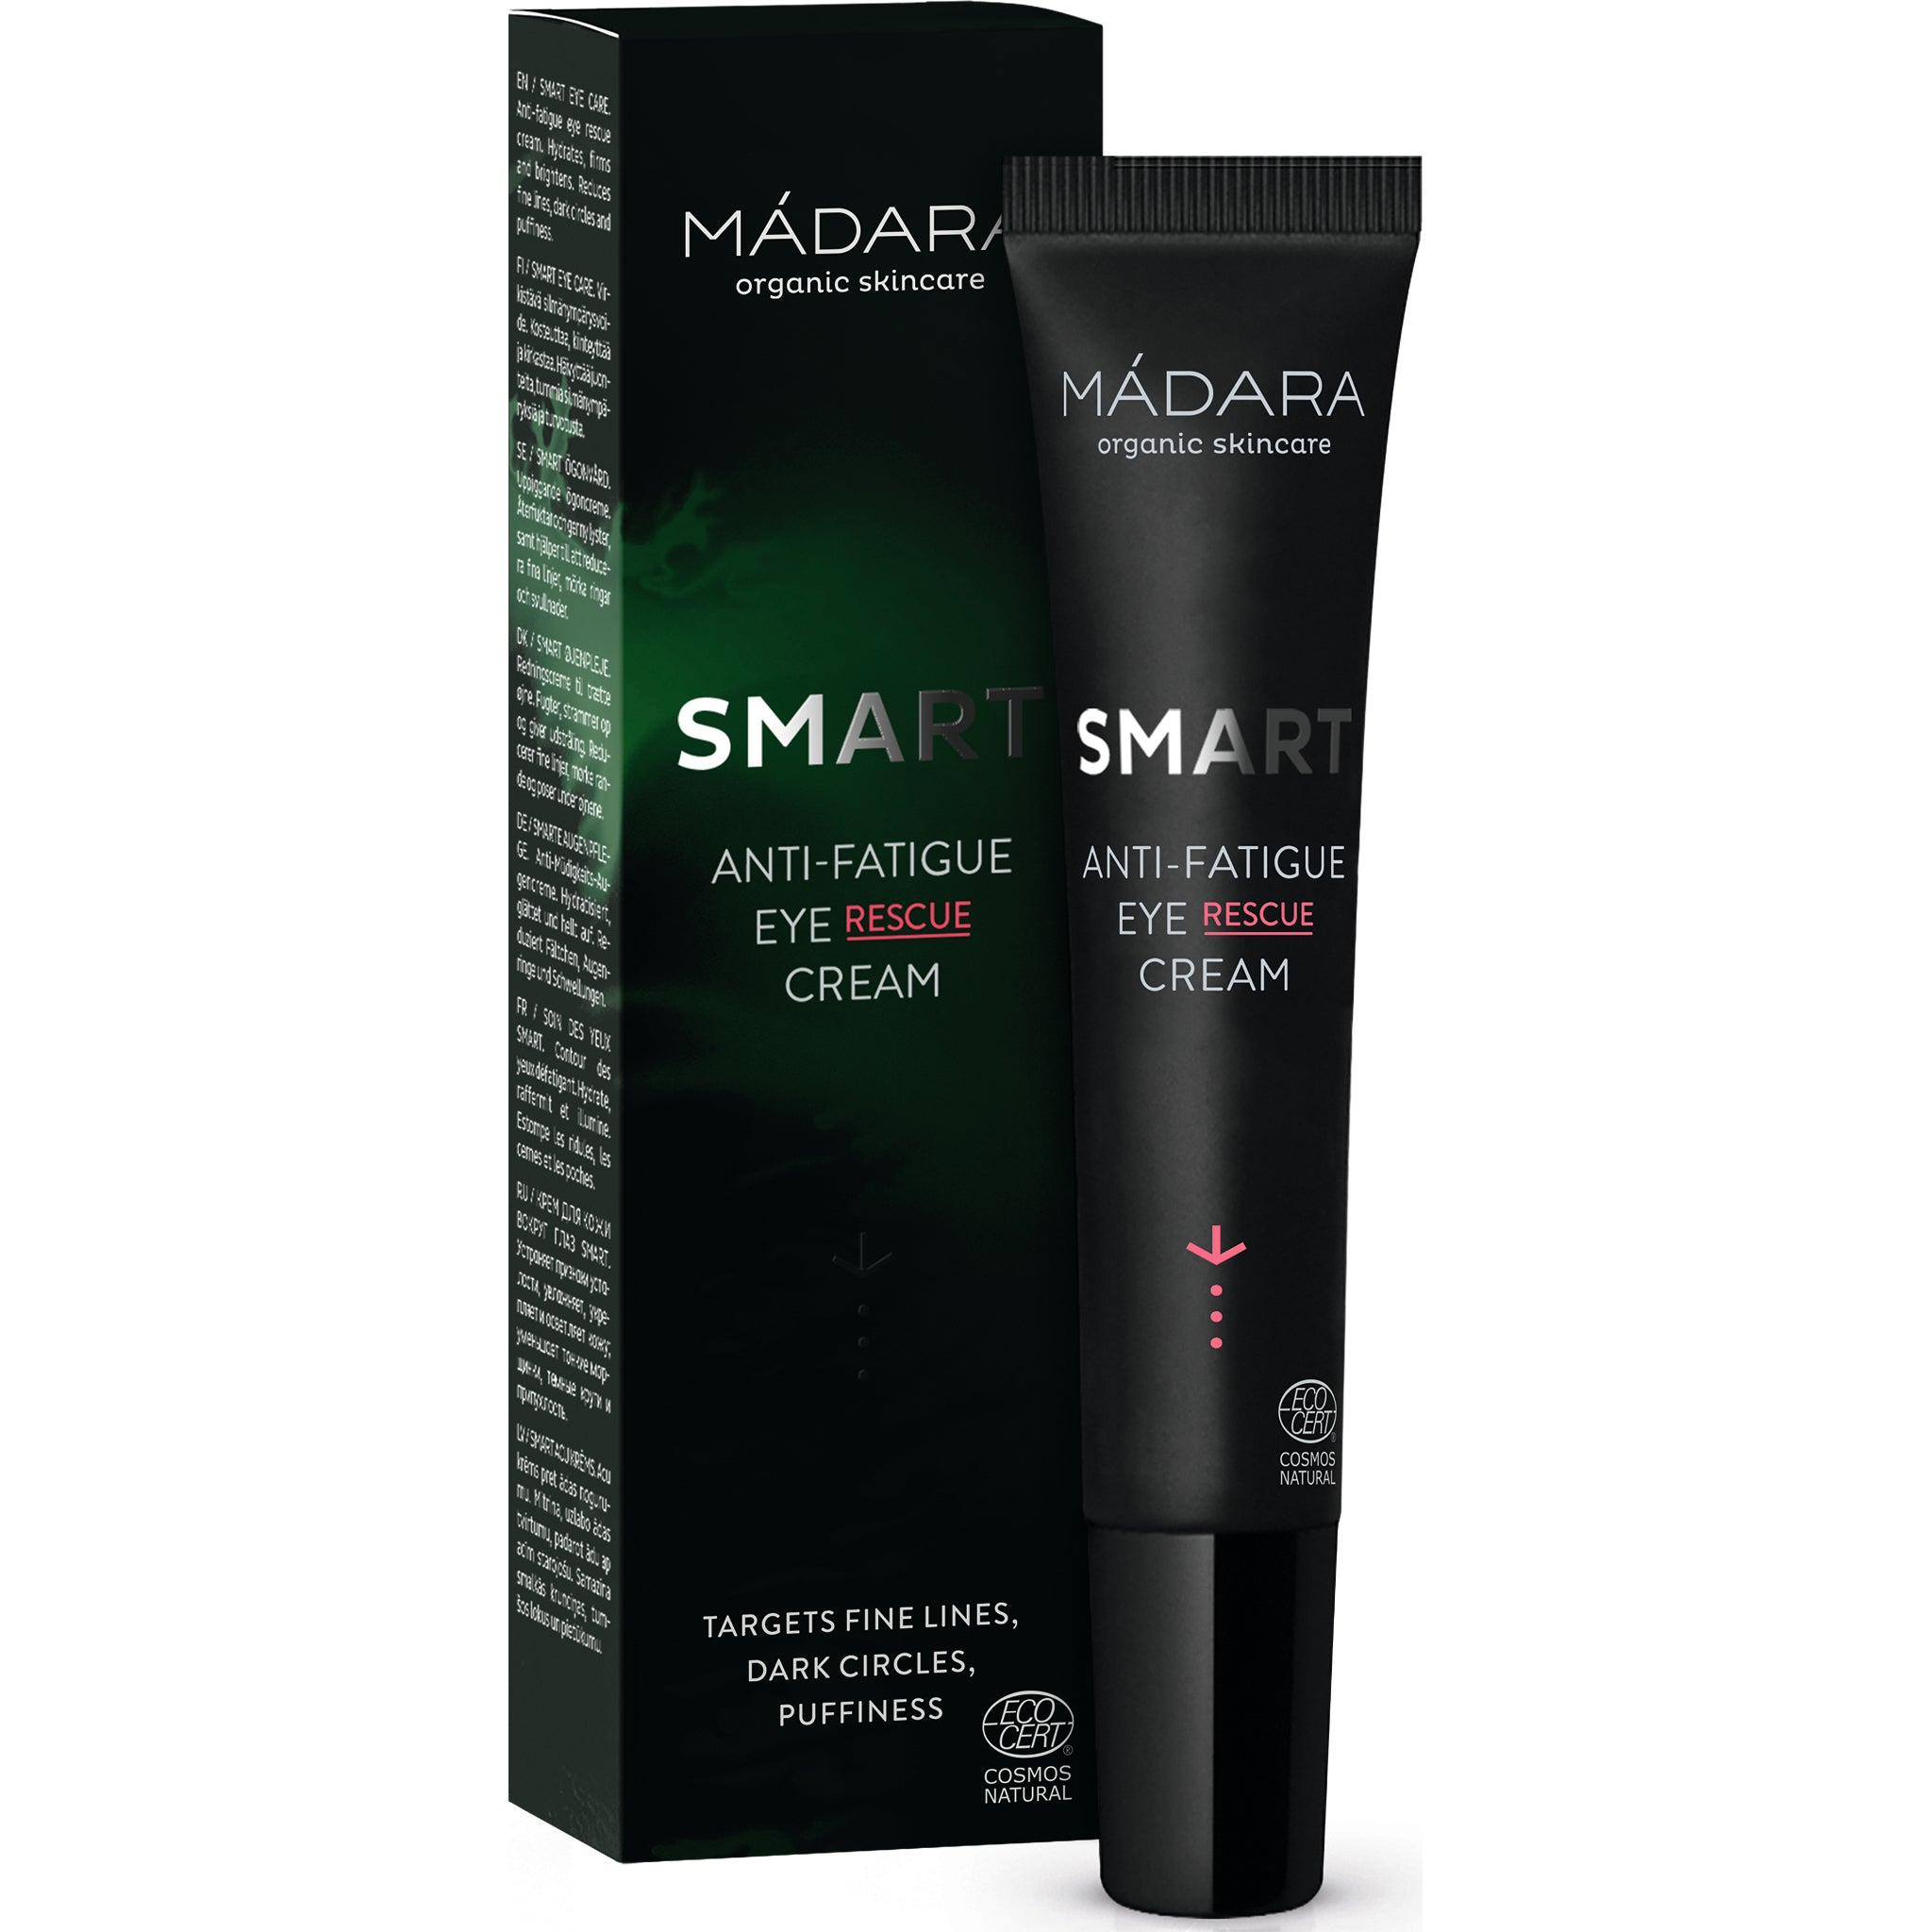 SMART Anti-Fatigue Eye Rescue Cream